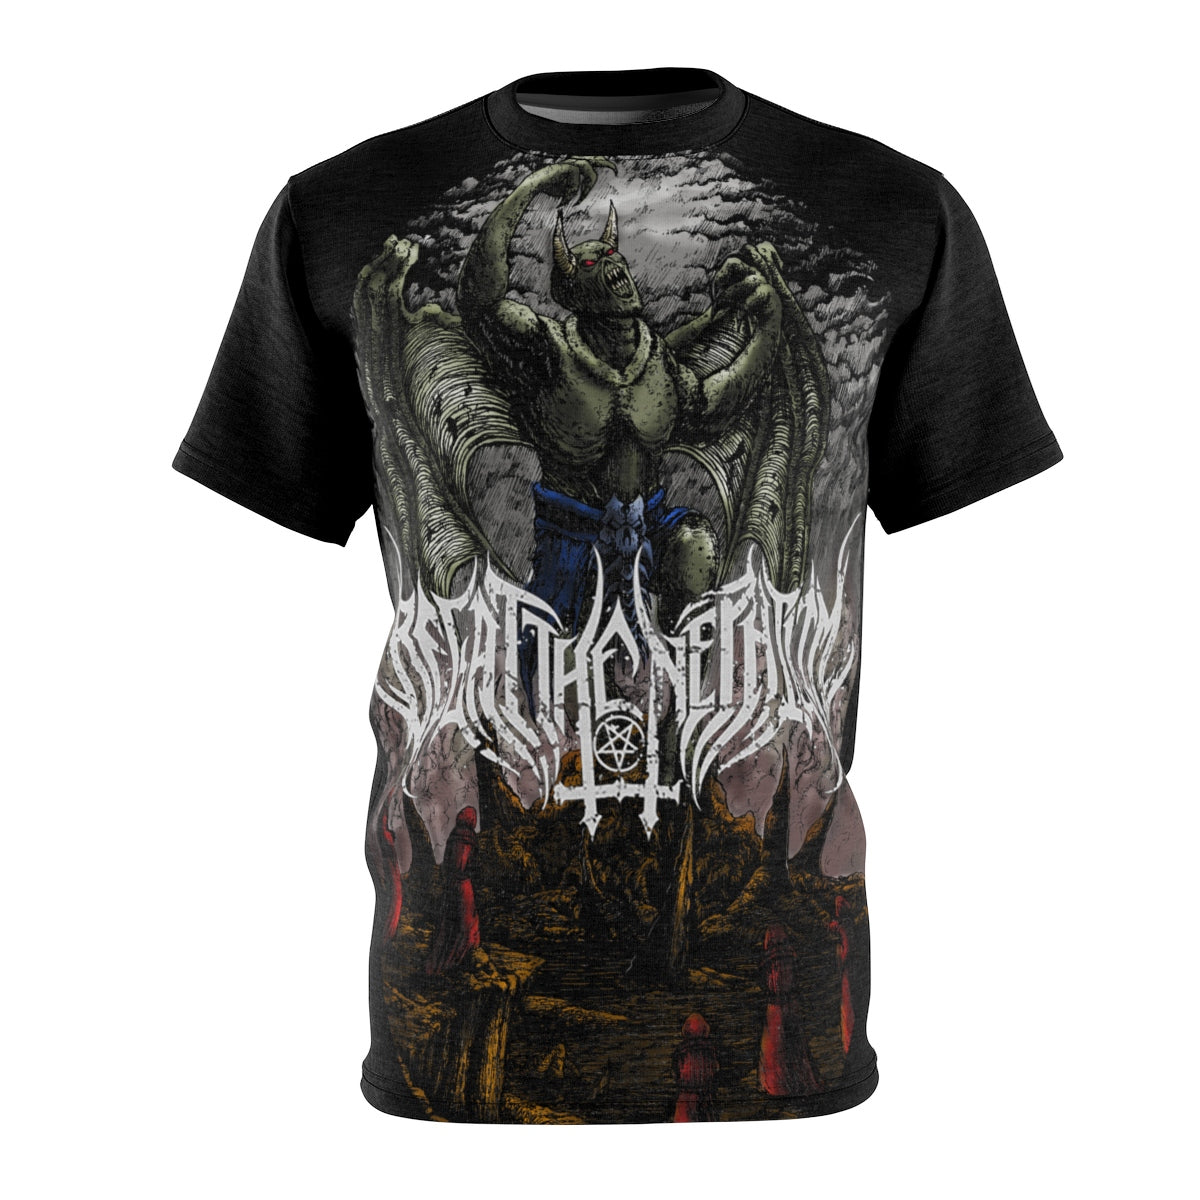 Begat the Nephilim Full Size Print Tee